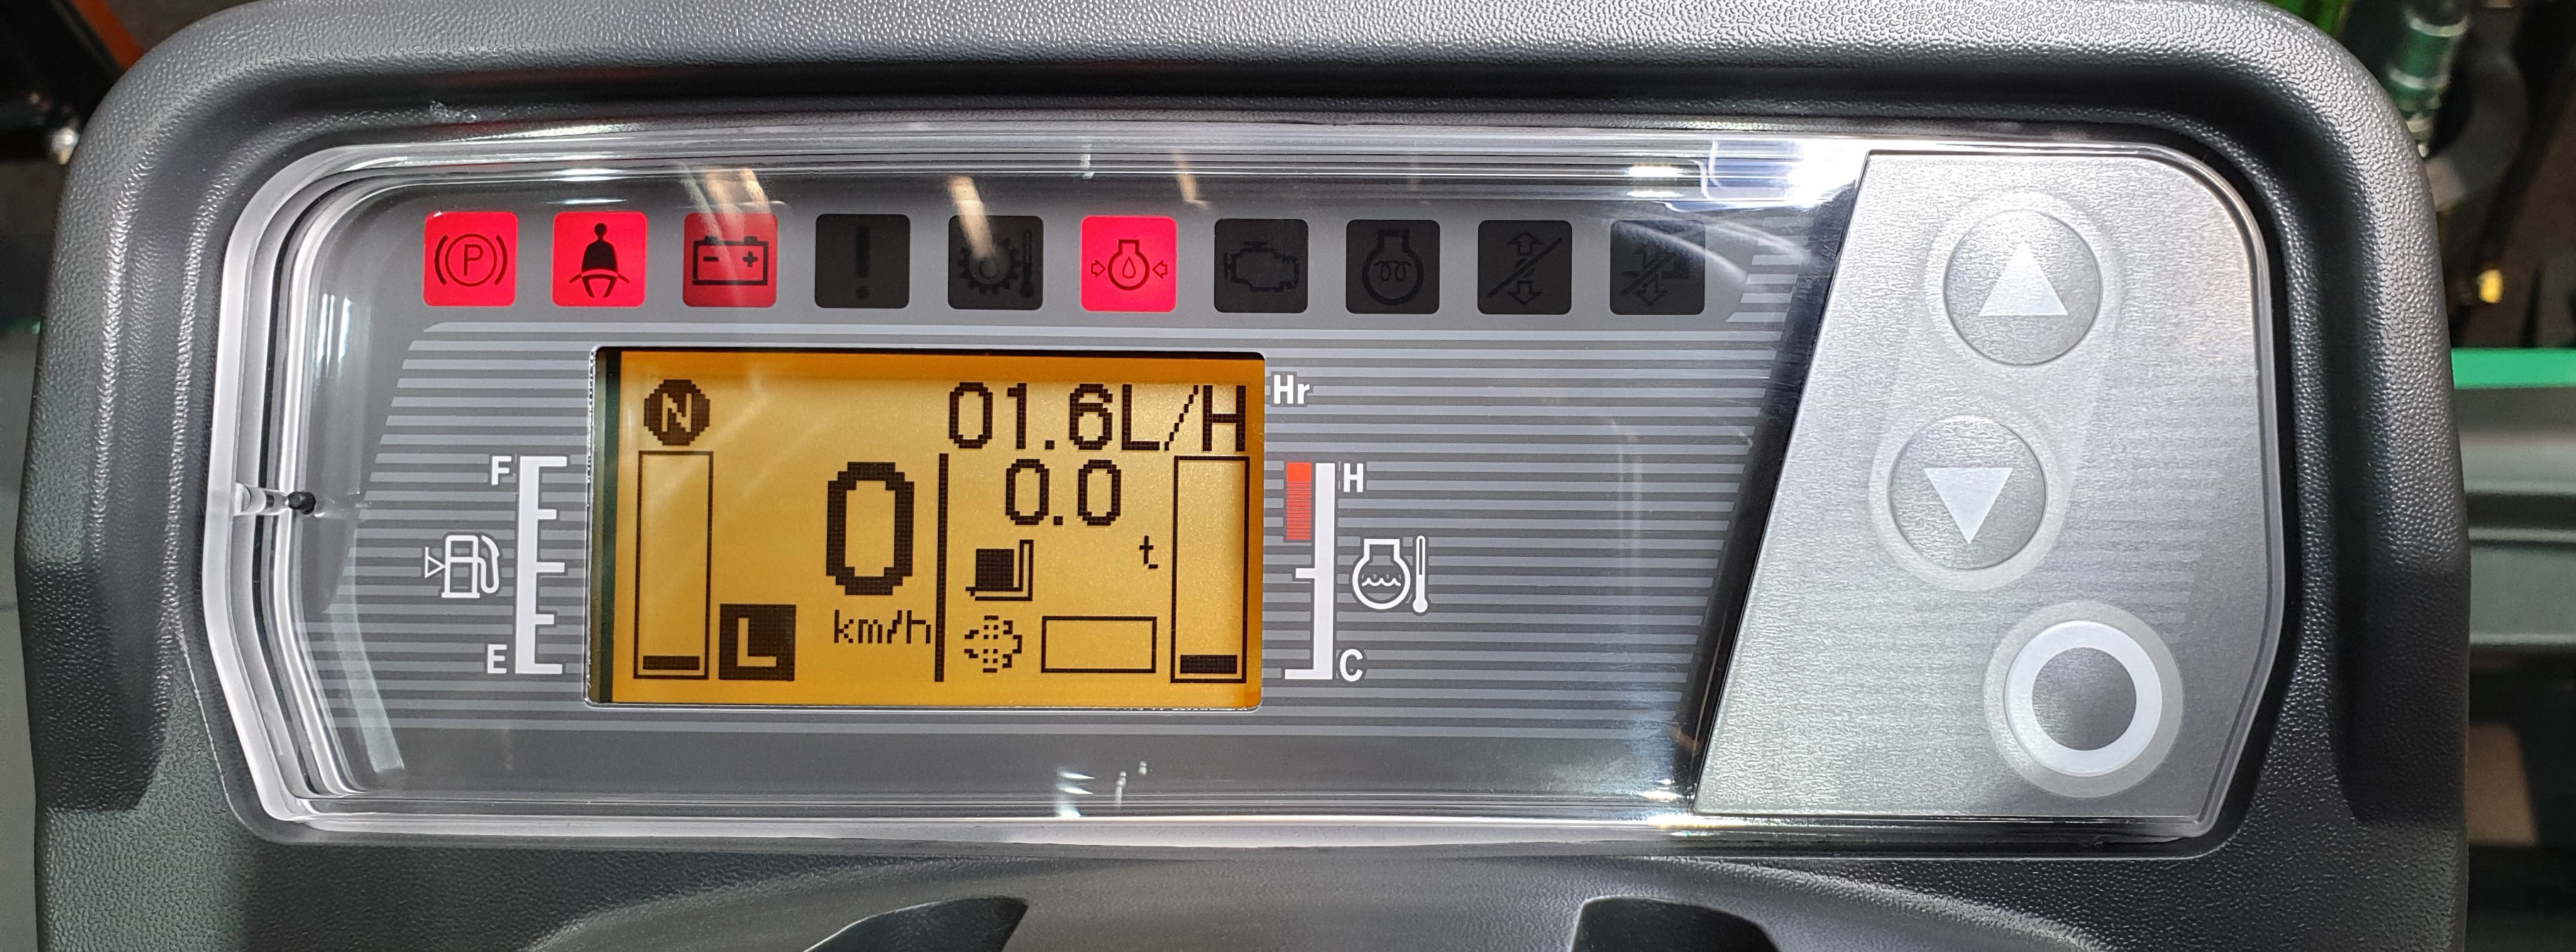 TCM FD20-E2 Dash display